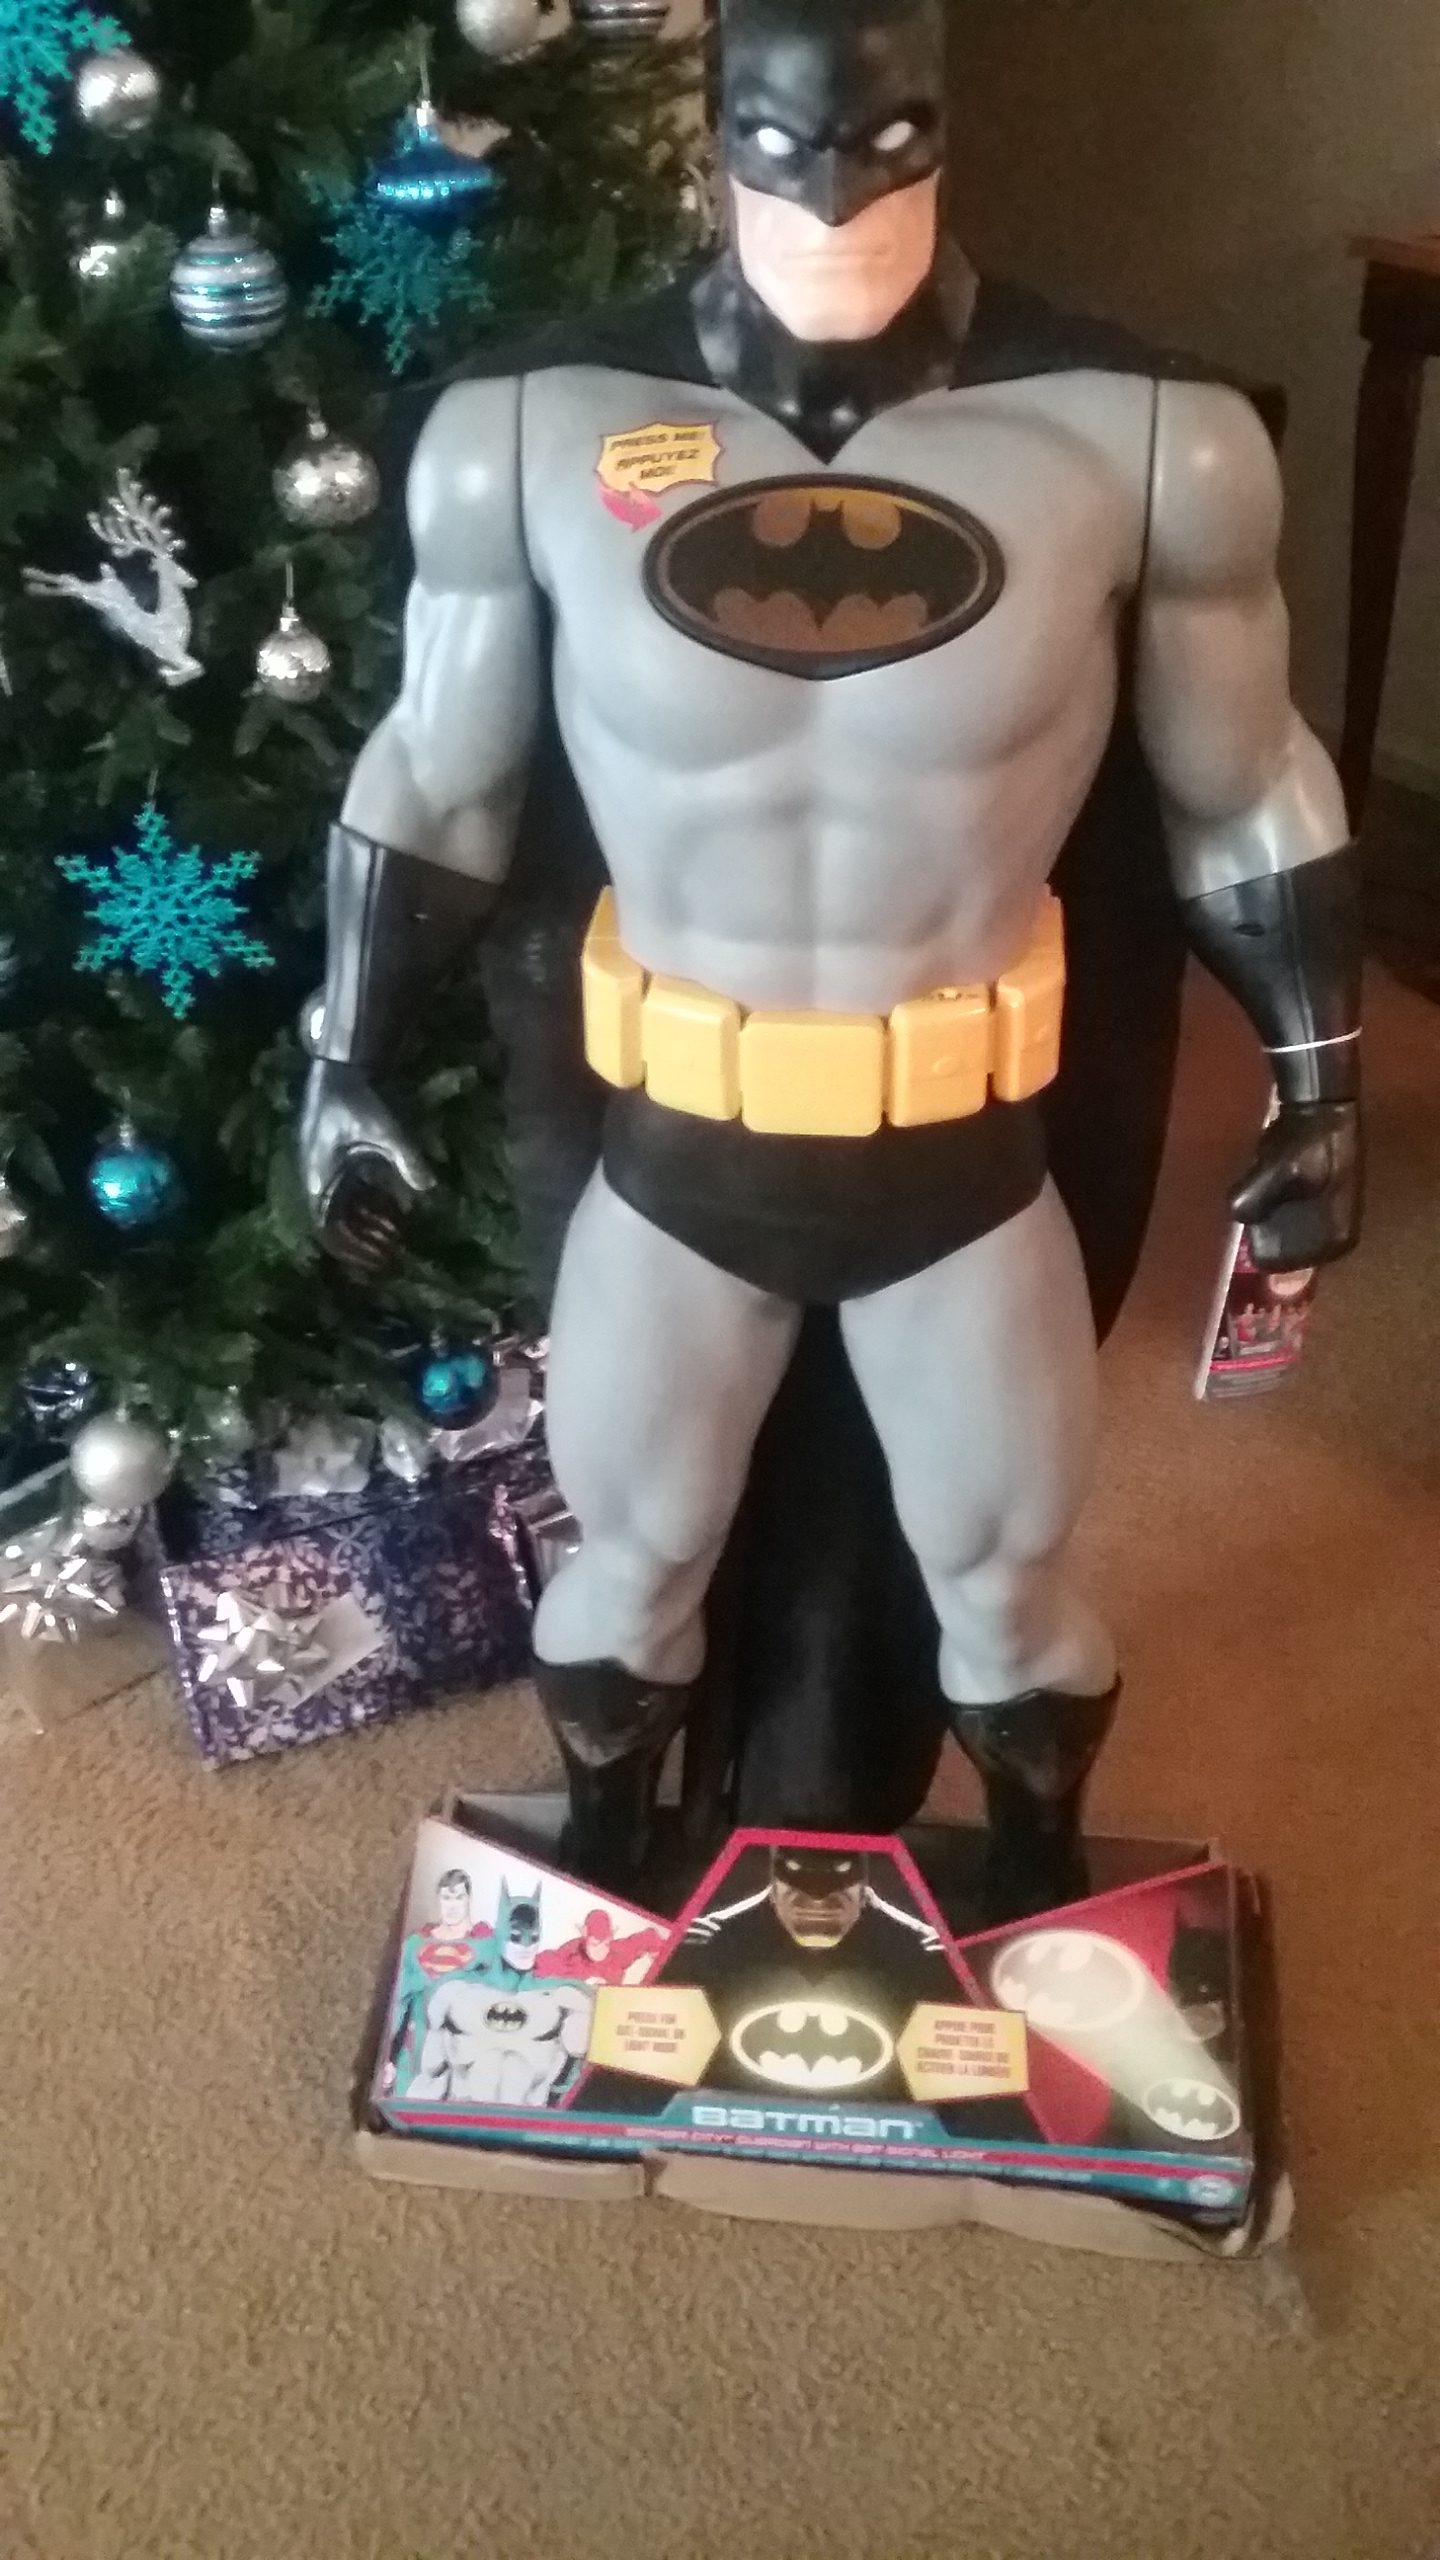 "2016 Holiday Guide Featuring Big-Figs Colossal DC Universe 48.5"" Gotham Guardian with Bat Signal Light From JAKKS Pacific Toys!"